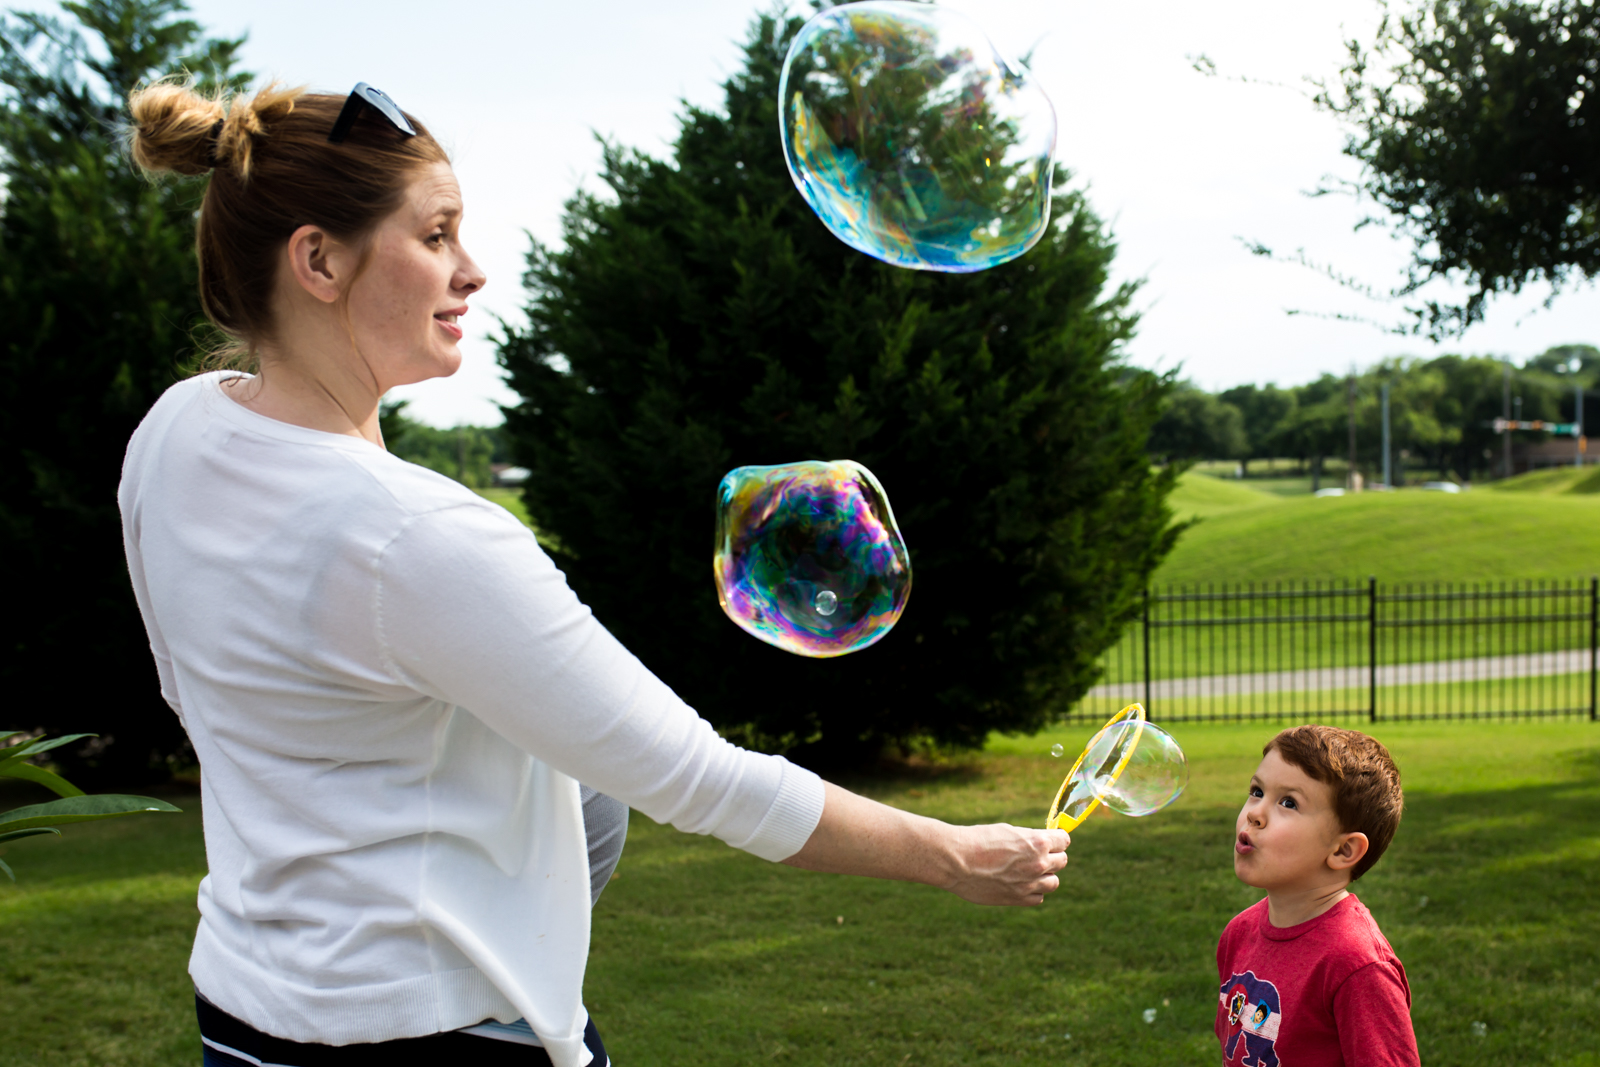 Lawren Rose Photography captures a photo of a pregnant Mom holding a bubble wand out for her 4 year old son who is blowing huge gigantic bubbles into the air